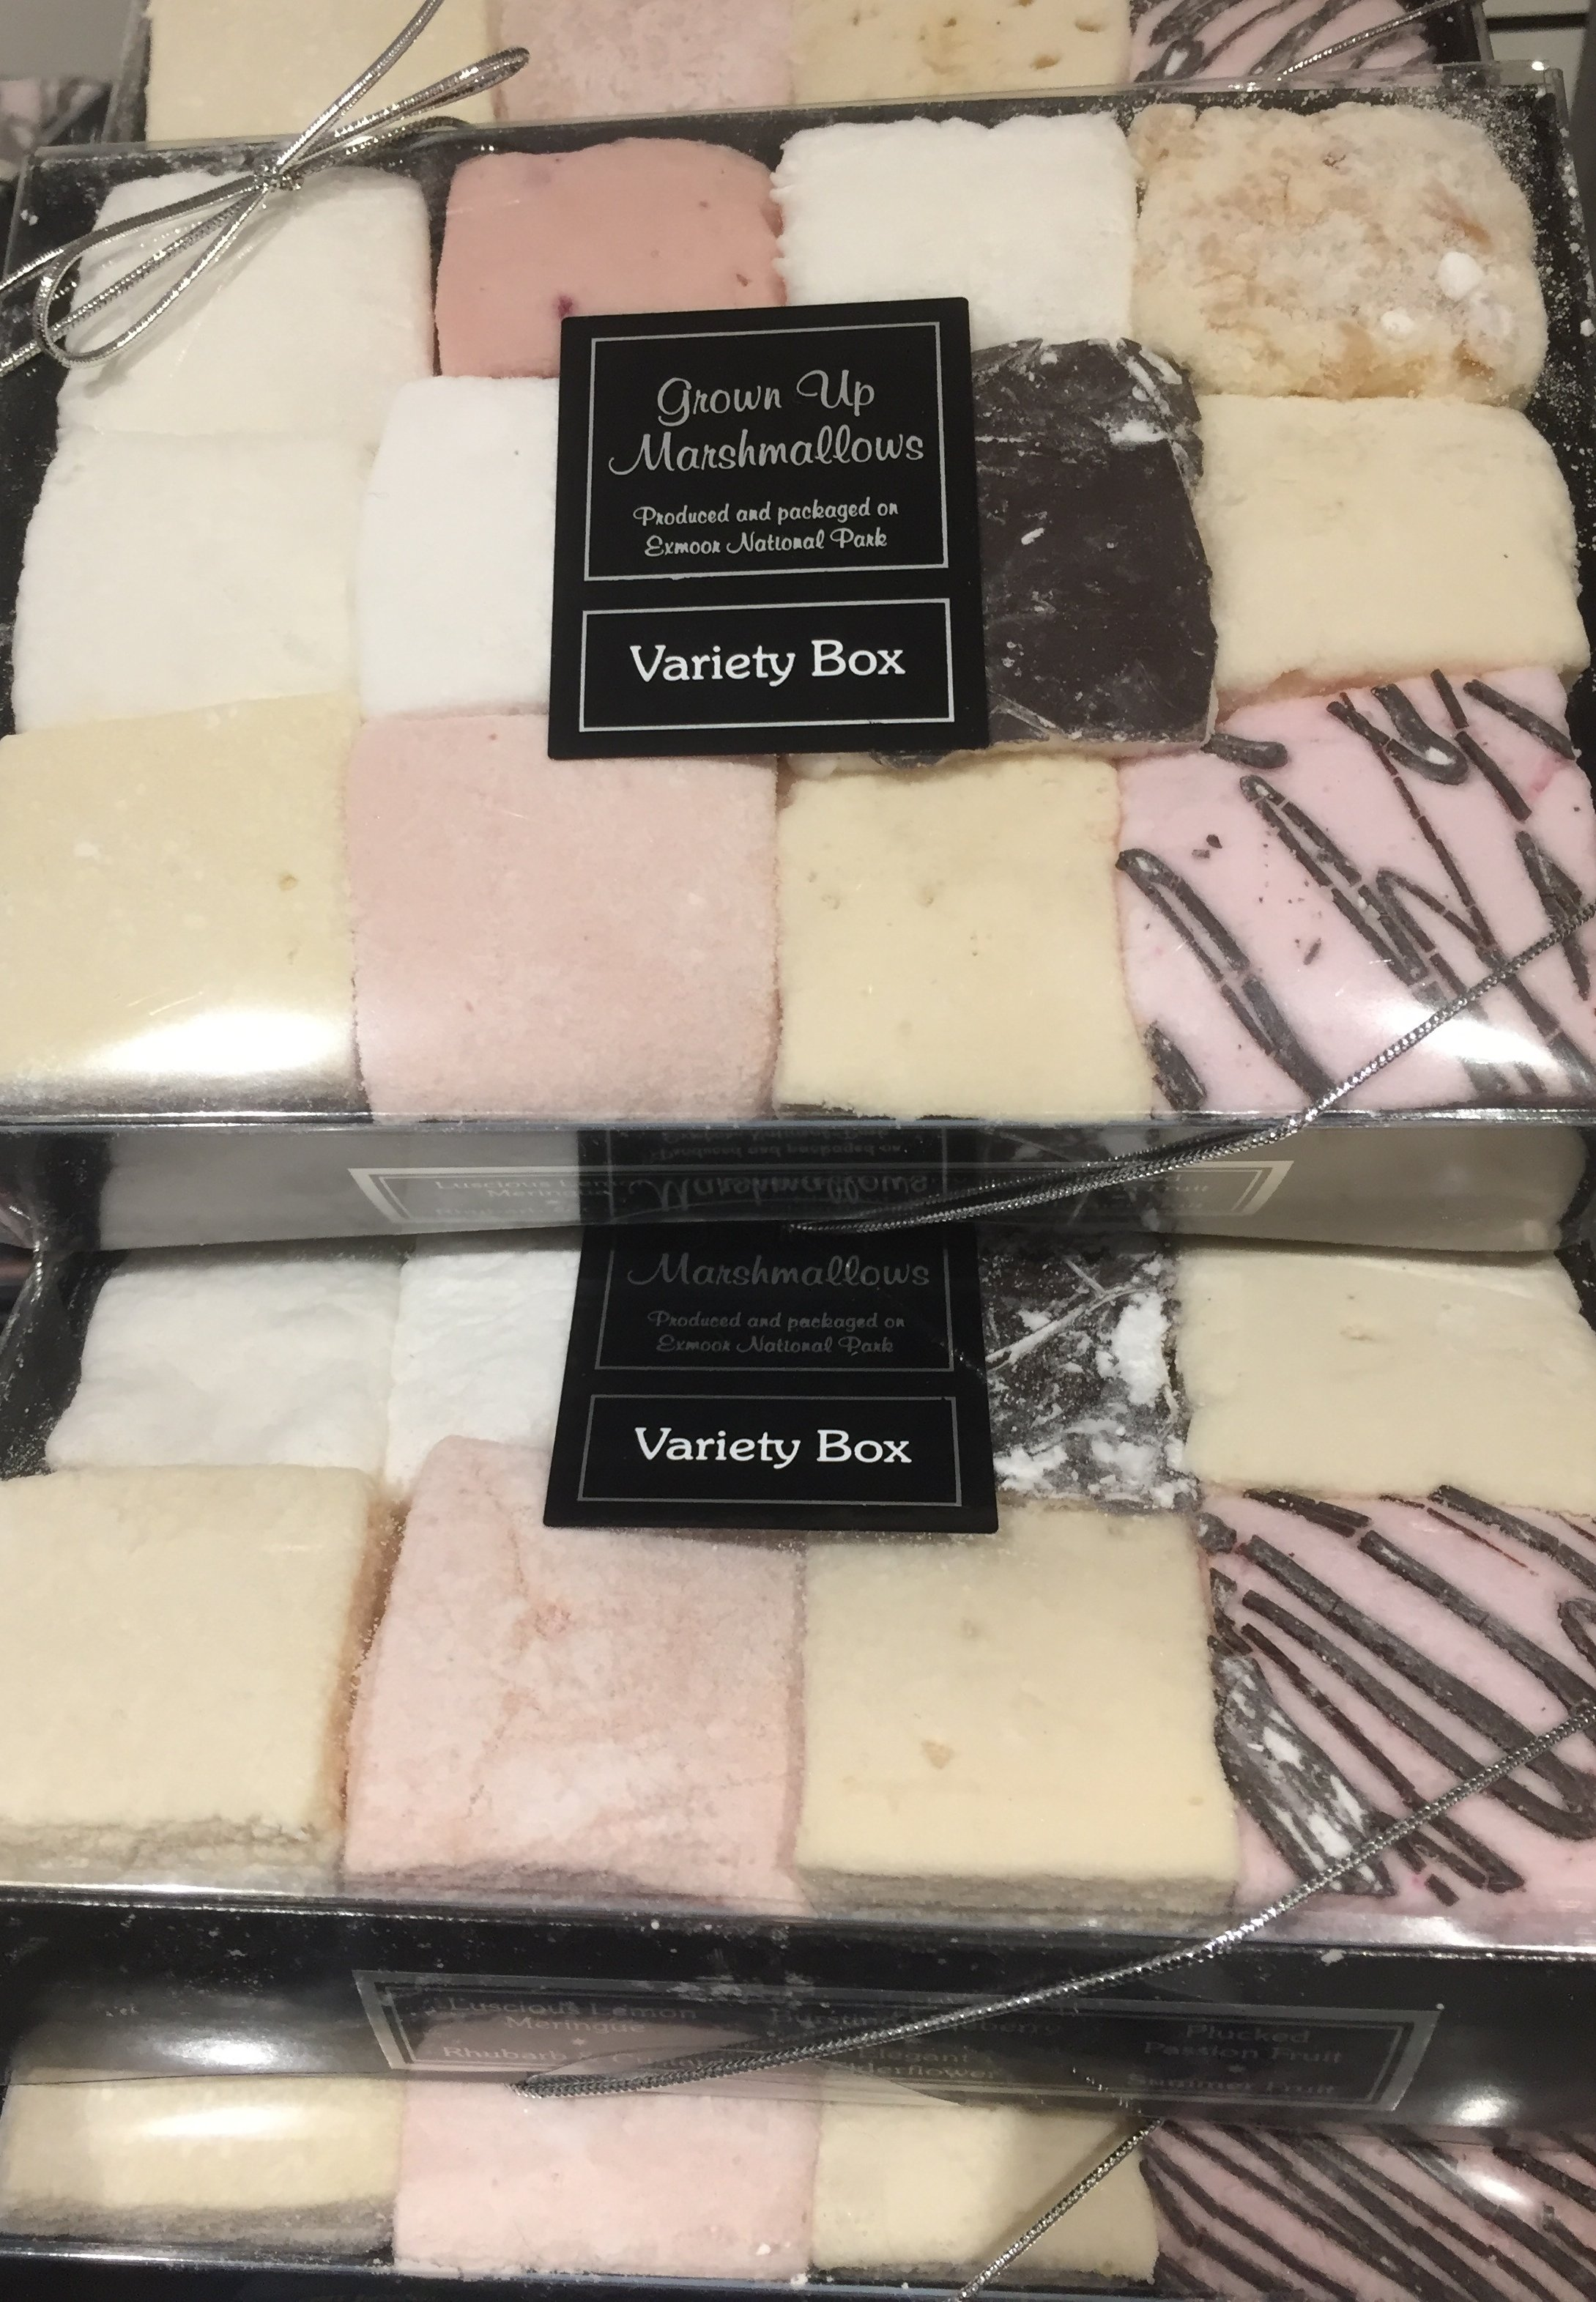 Double Variety Box - Now back in stock!